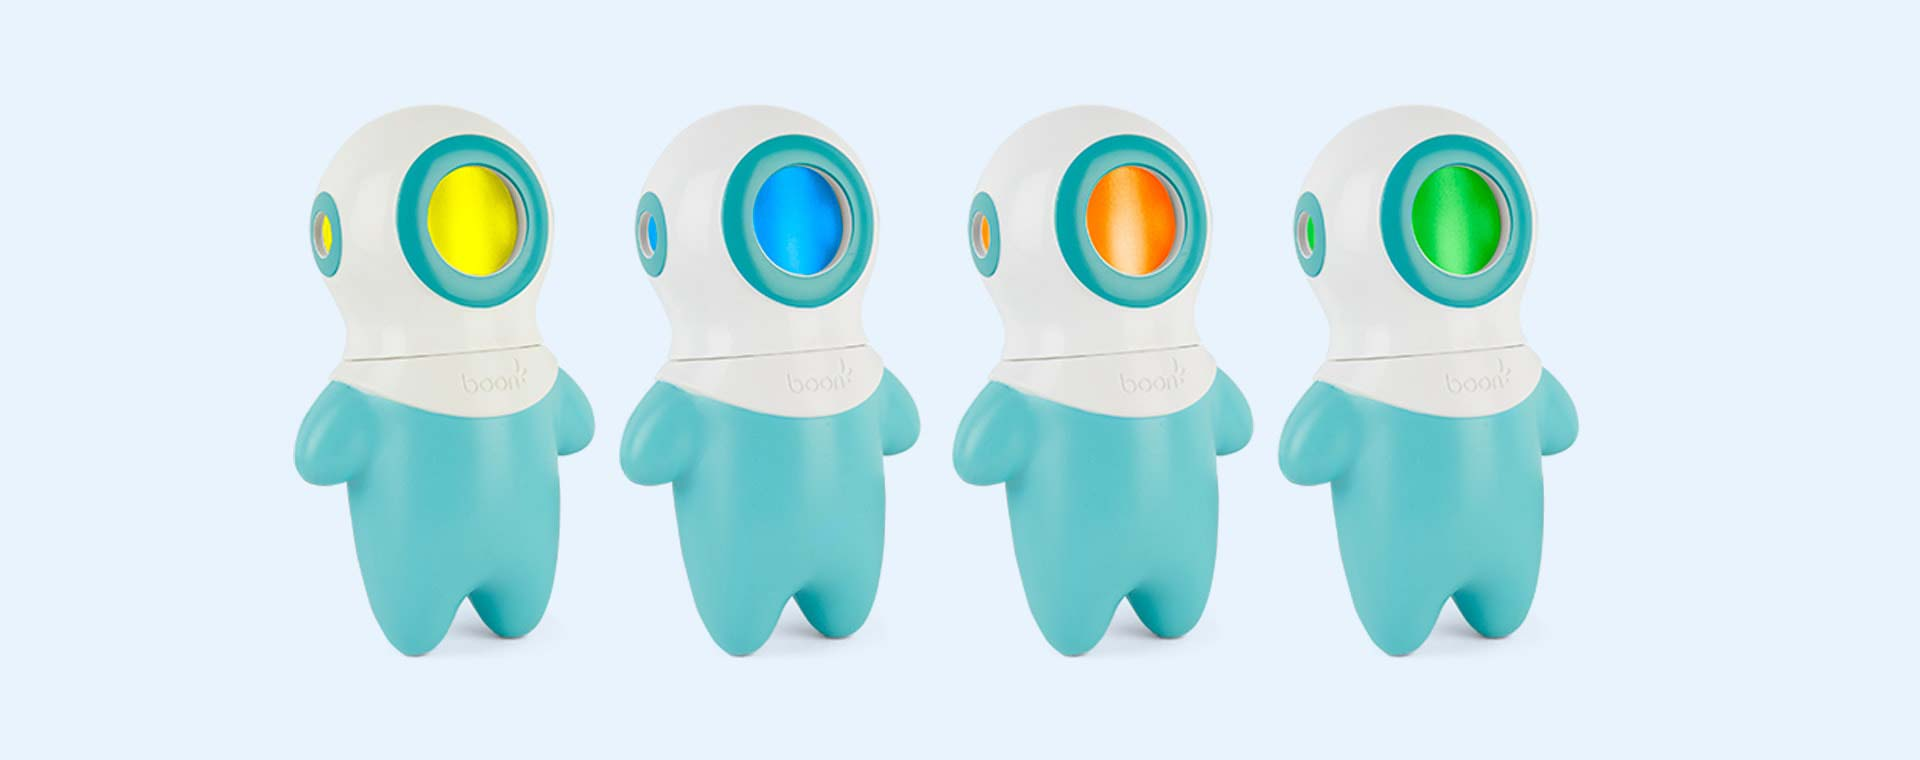 Blue Boon Marco Light Up Bath Toy